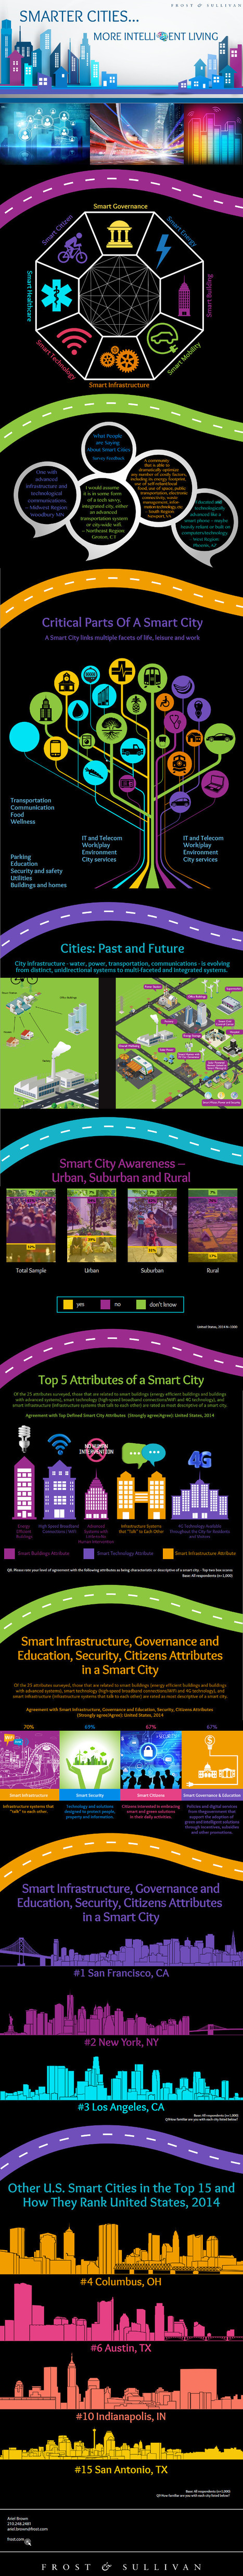 Infographic: How Aware Are You About Smart Cities? | green infographics | Scoop.it